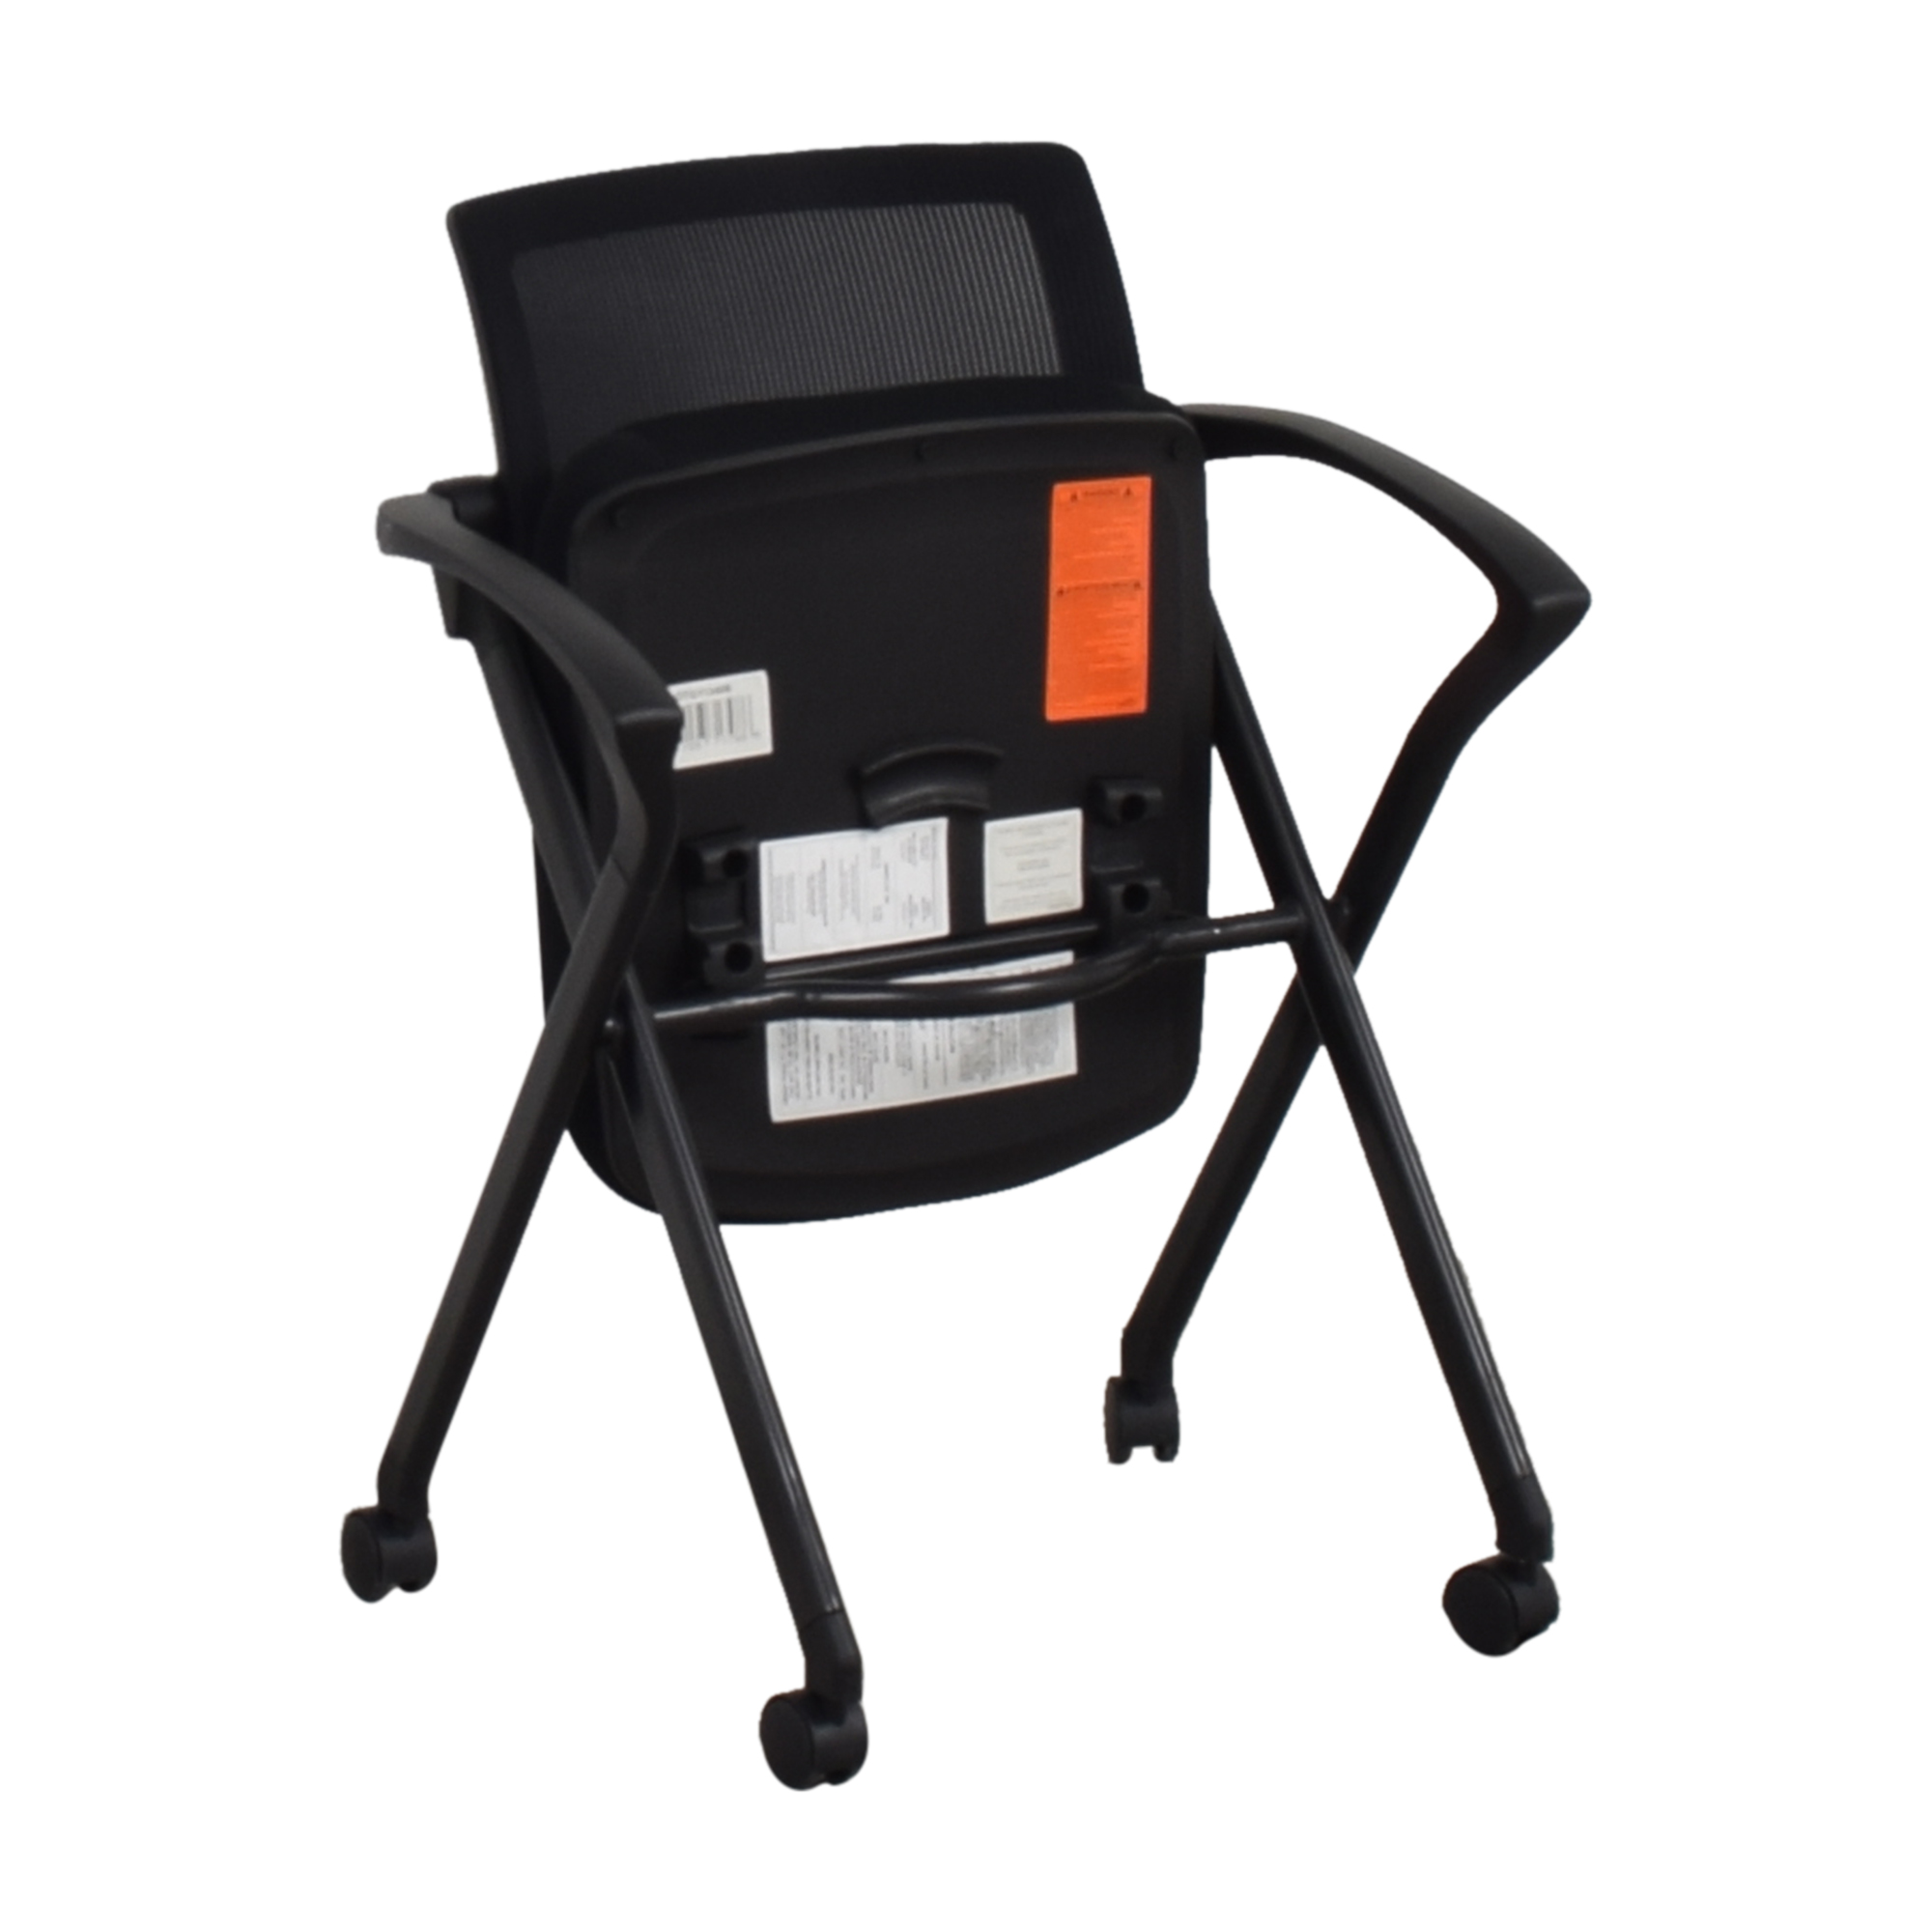 Offices to Go Offices to Go Mesh Back Flip Seat Nesting Chair price